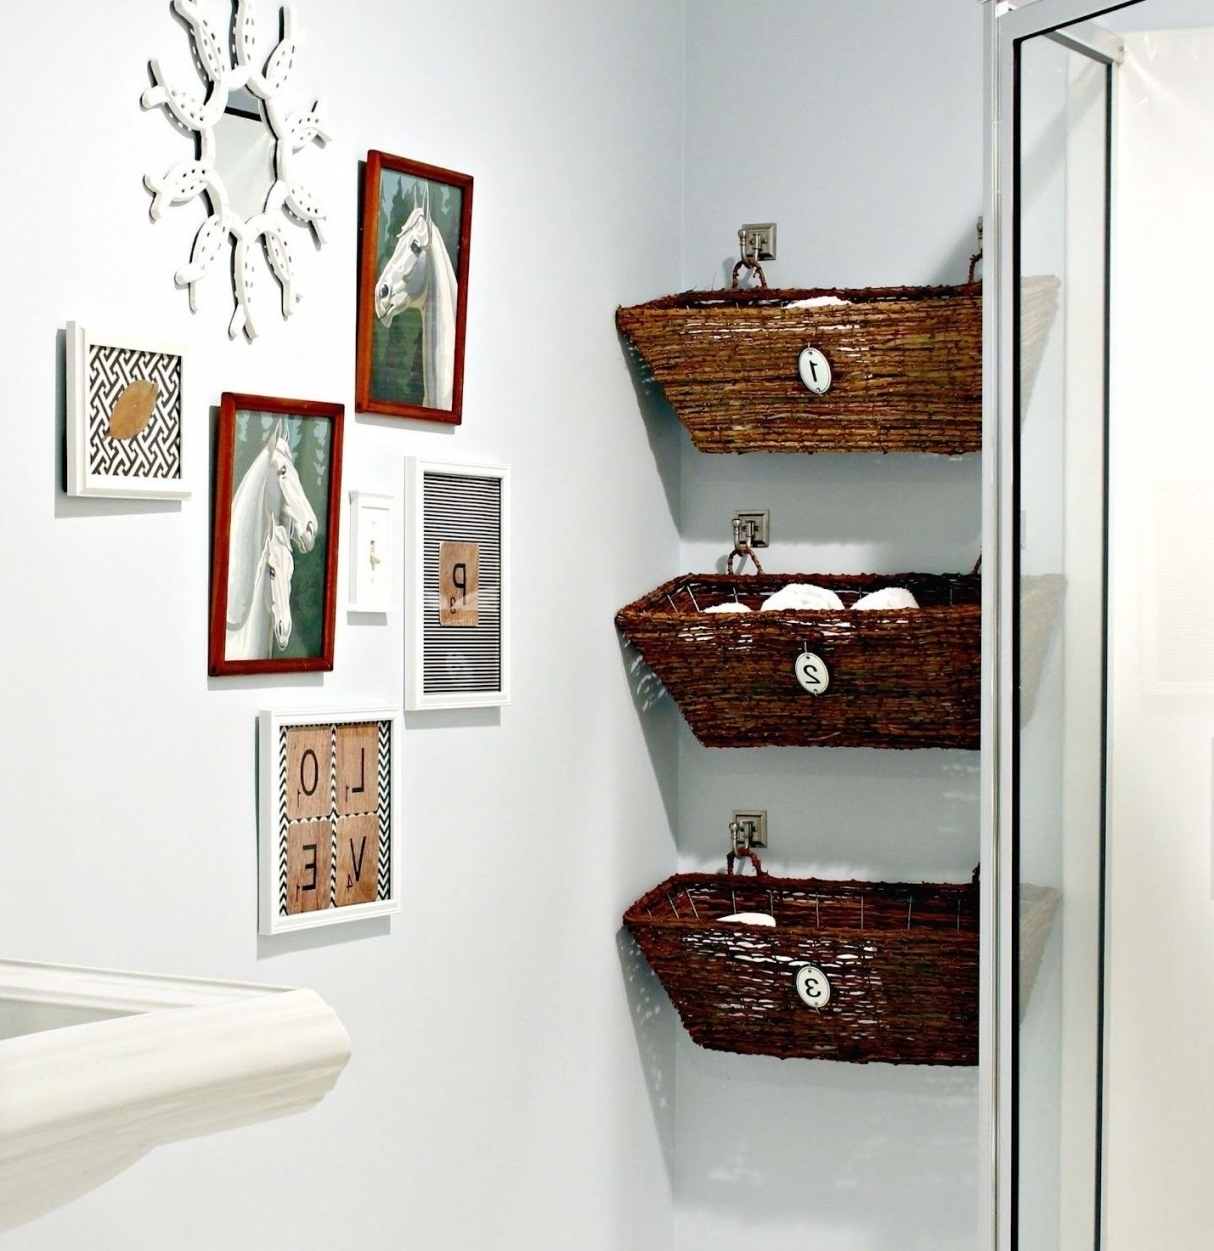 Design Of Architecture And In 27 Regarding Bathroom Wall Hangings (View 5 of 15)